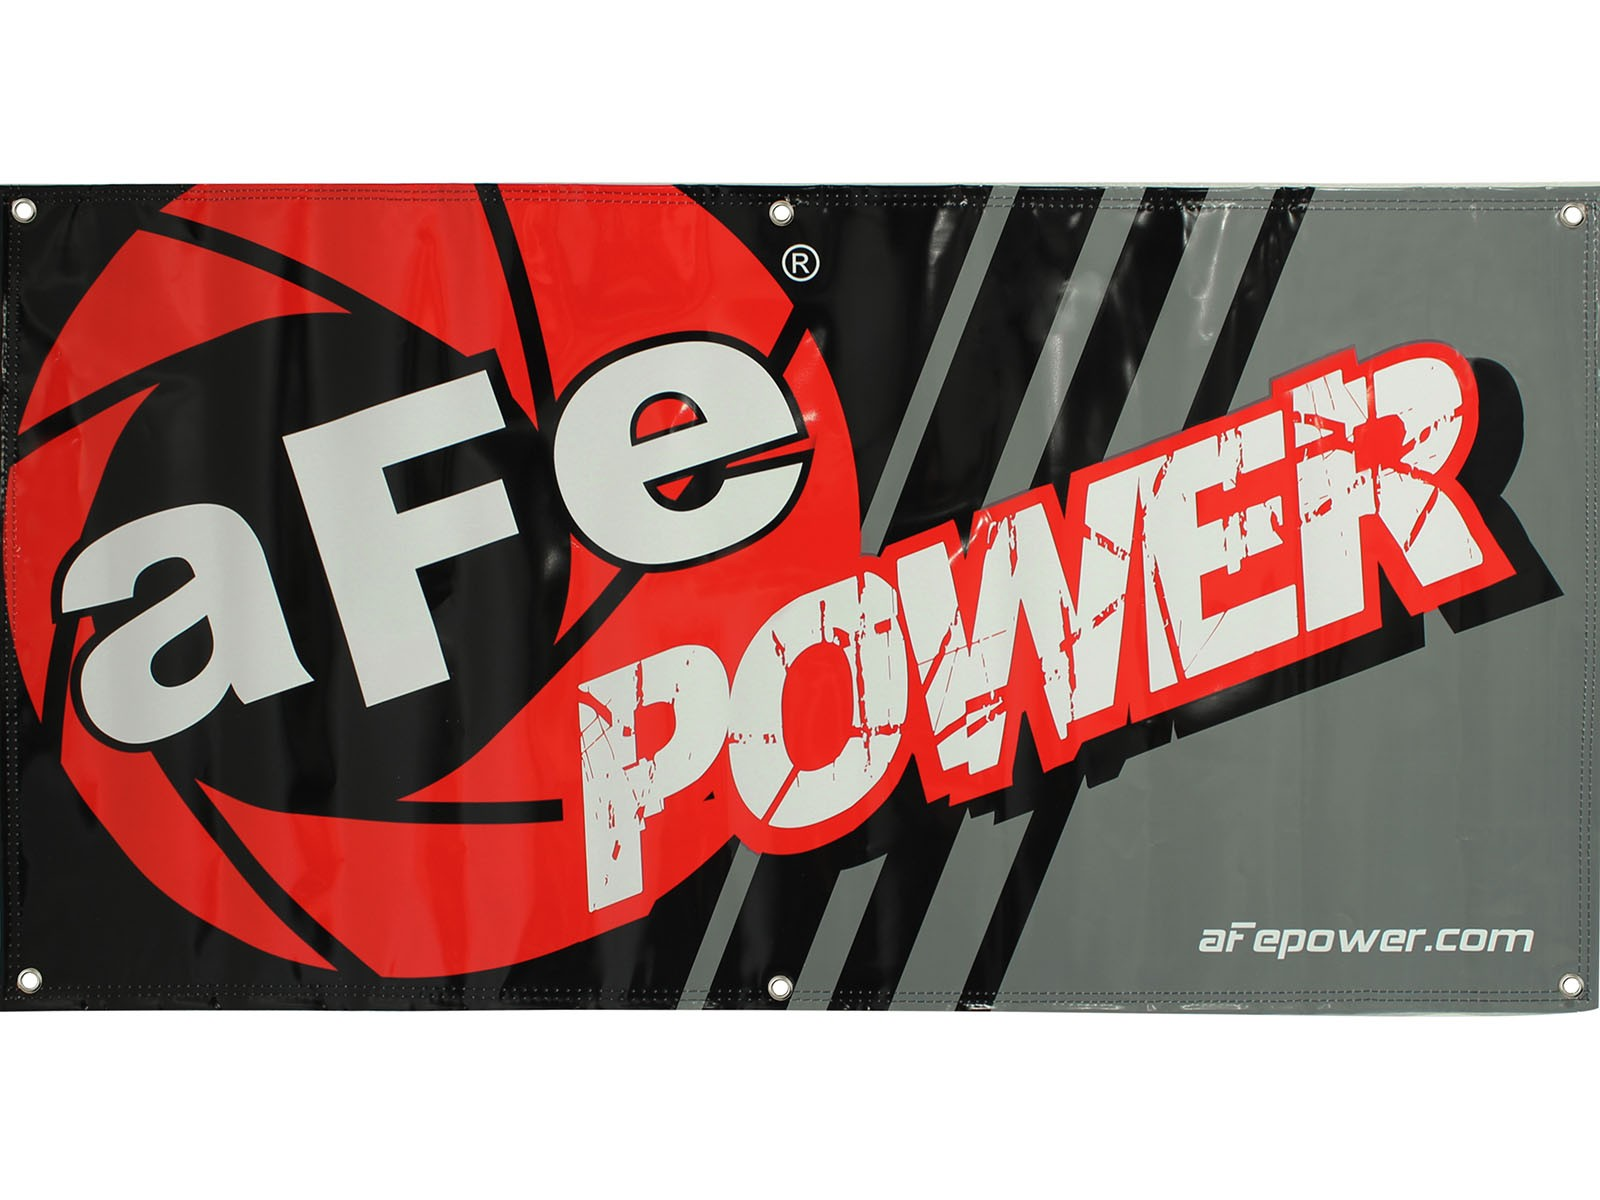 aFe POWER 40-10039 Banner, 2' x 4' ft.; aFe Power